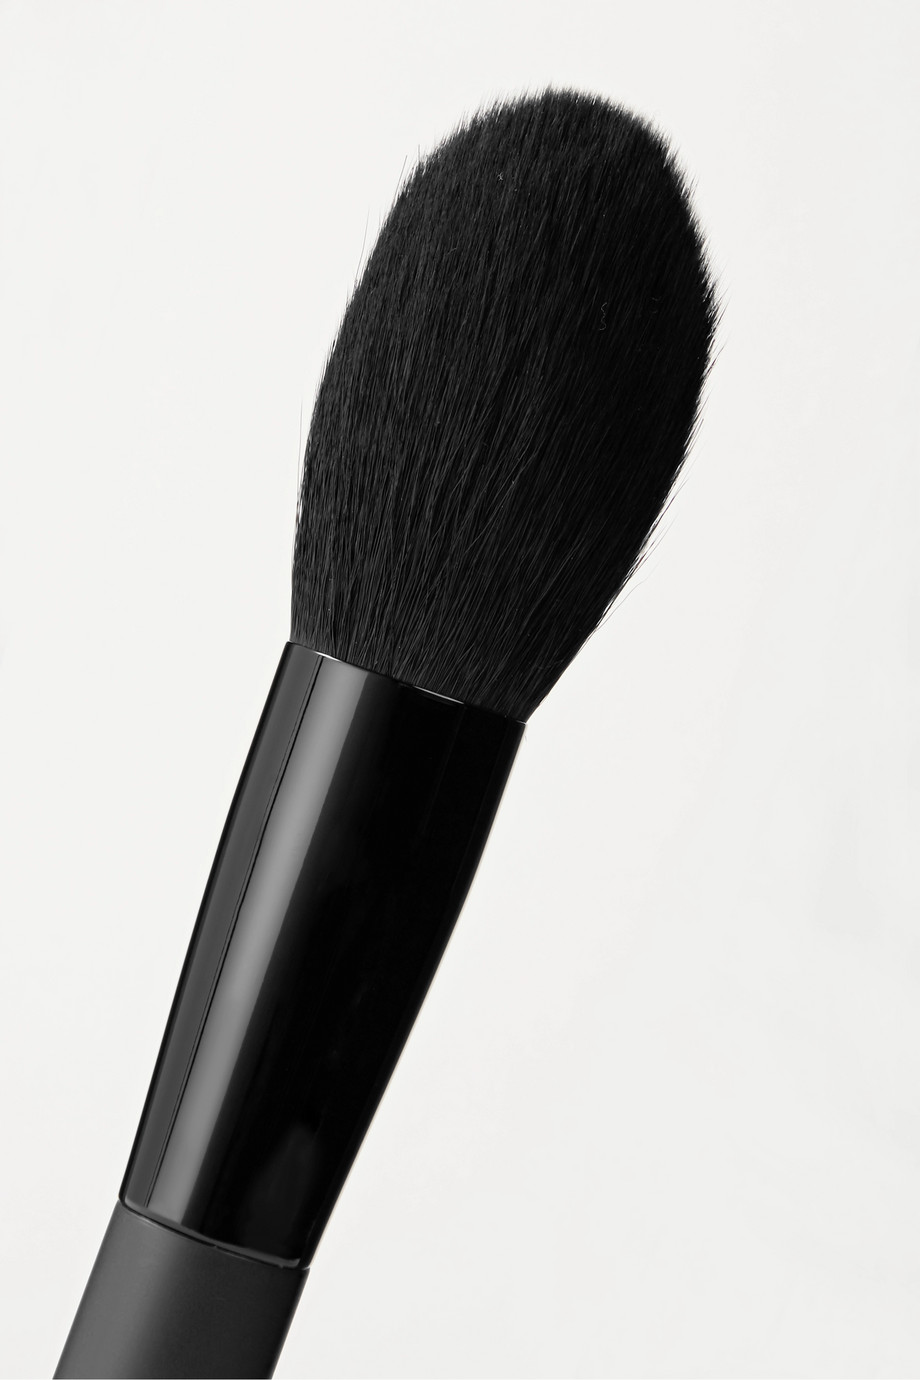 RAE MORRIS Jishaku 22 Pro Vegan Powder Brush